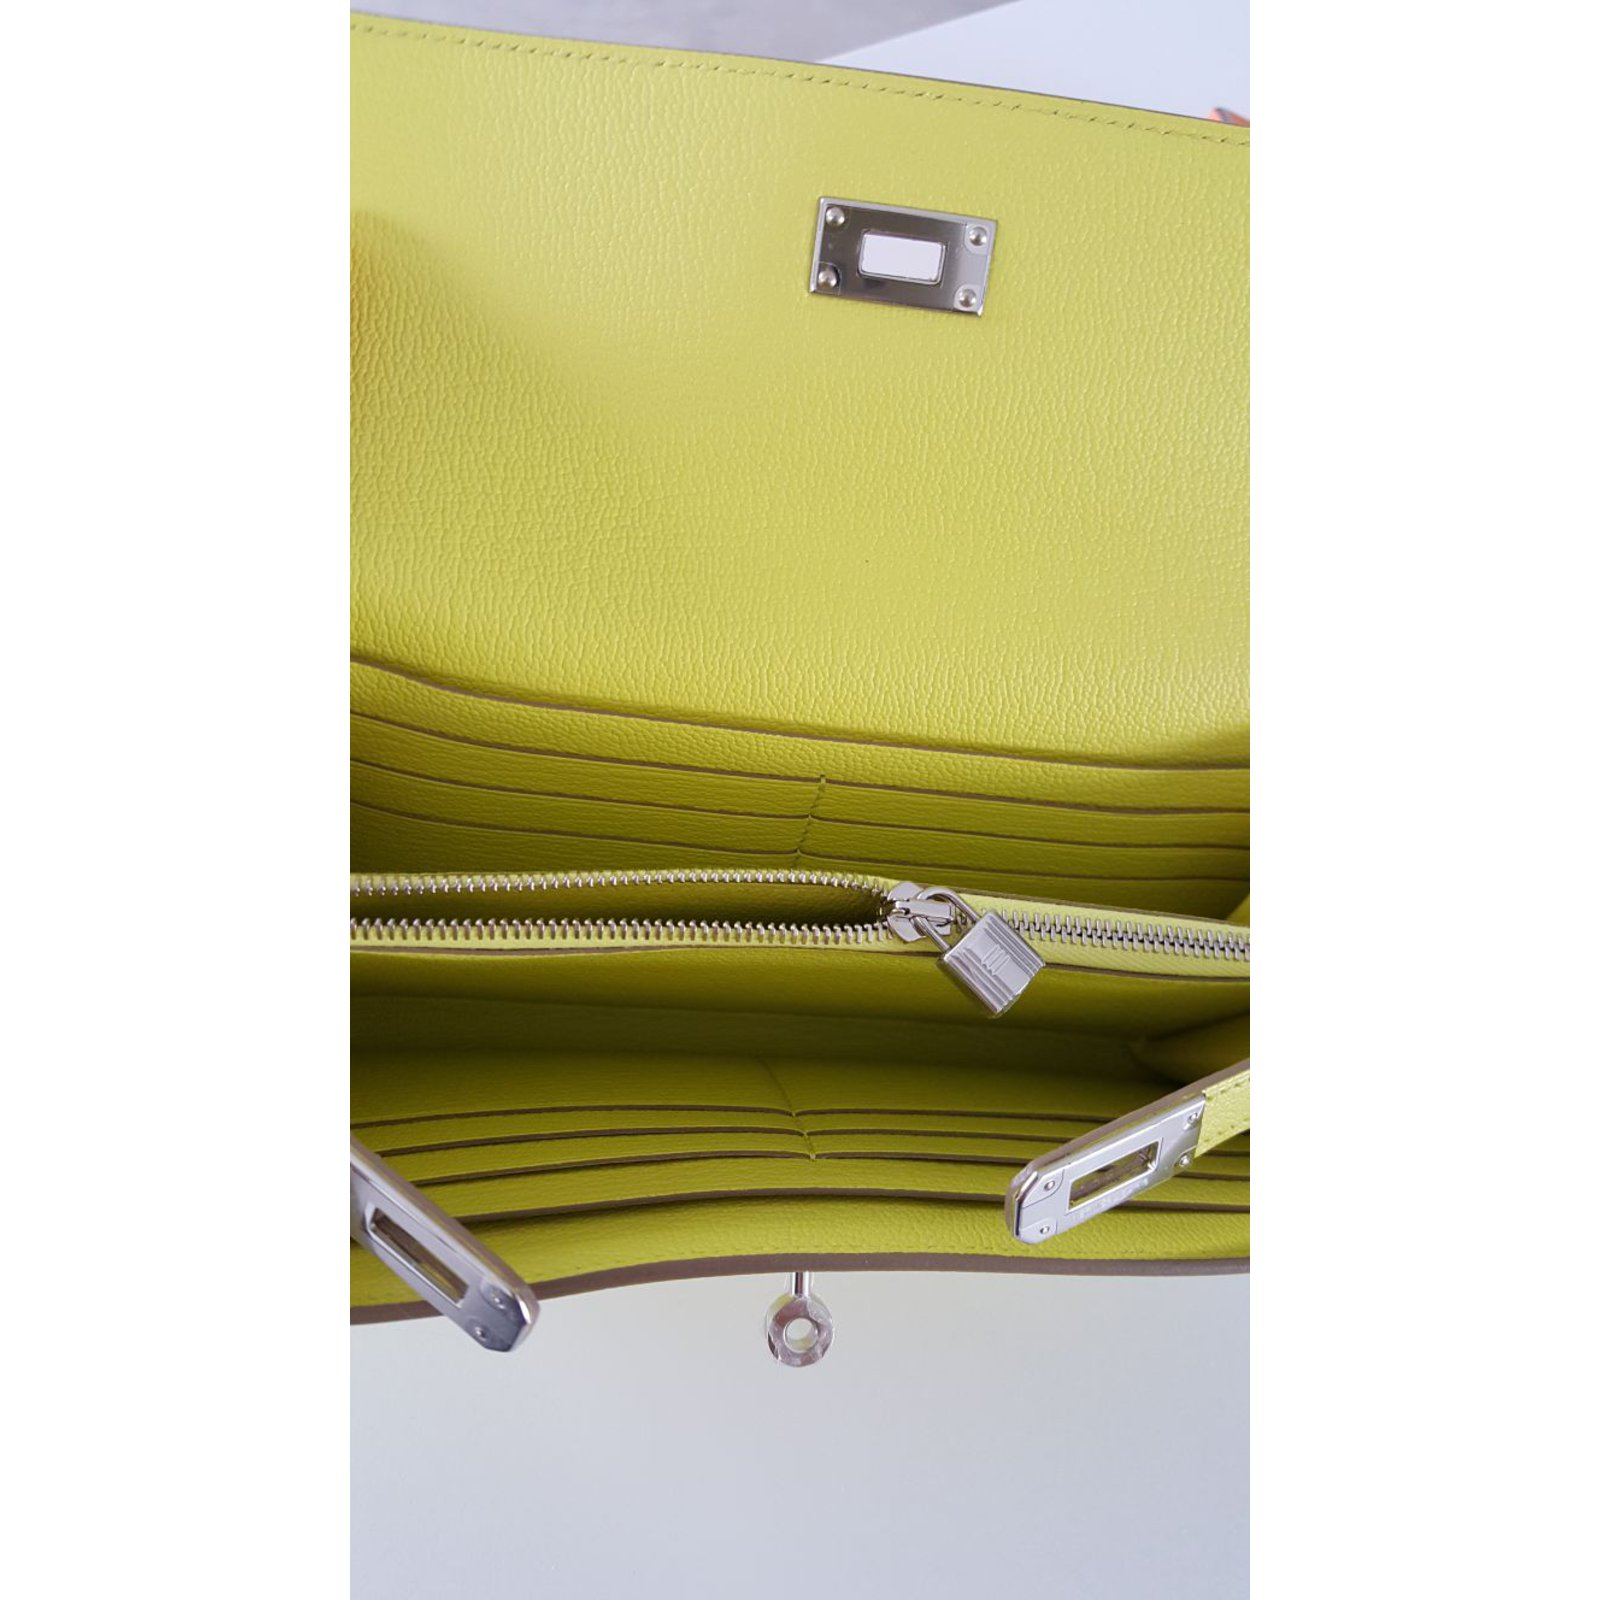 hermes kelly wallet yellow - photo #8